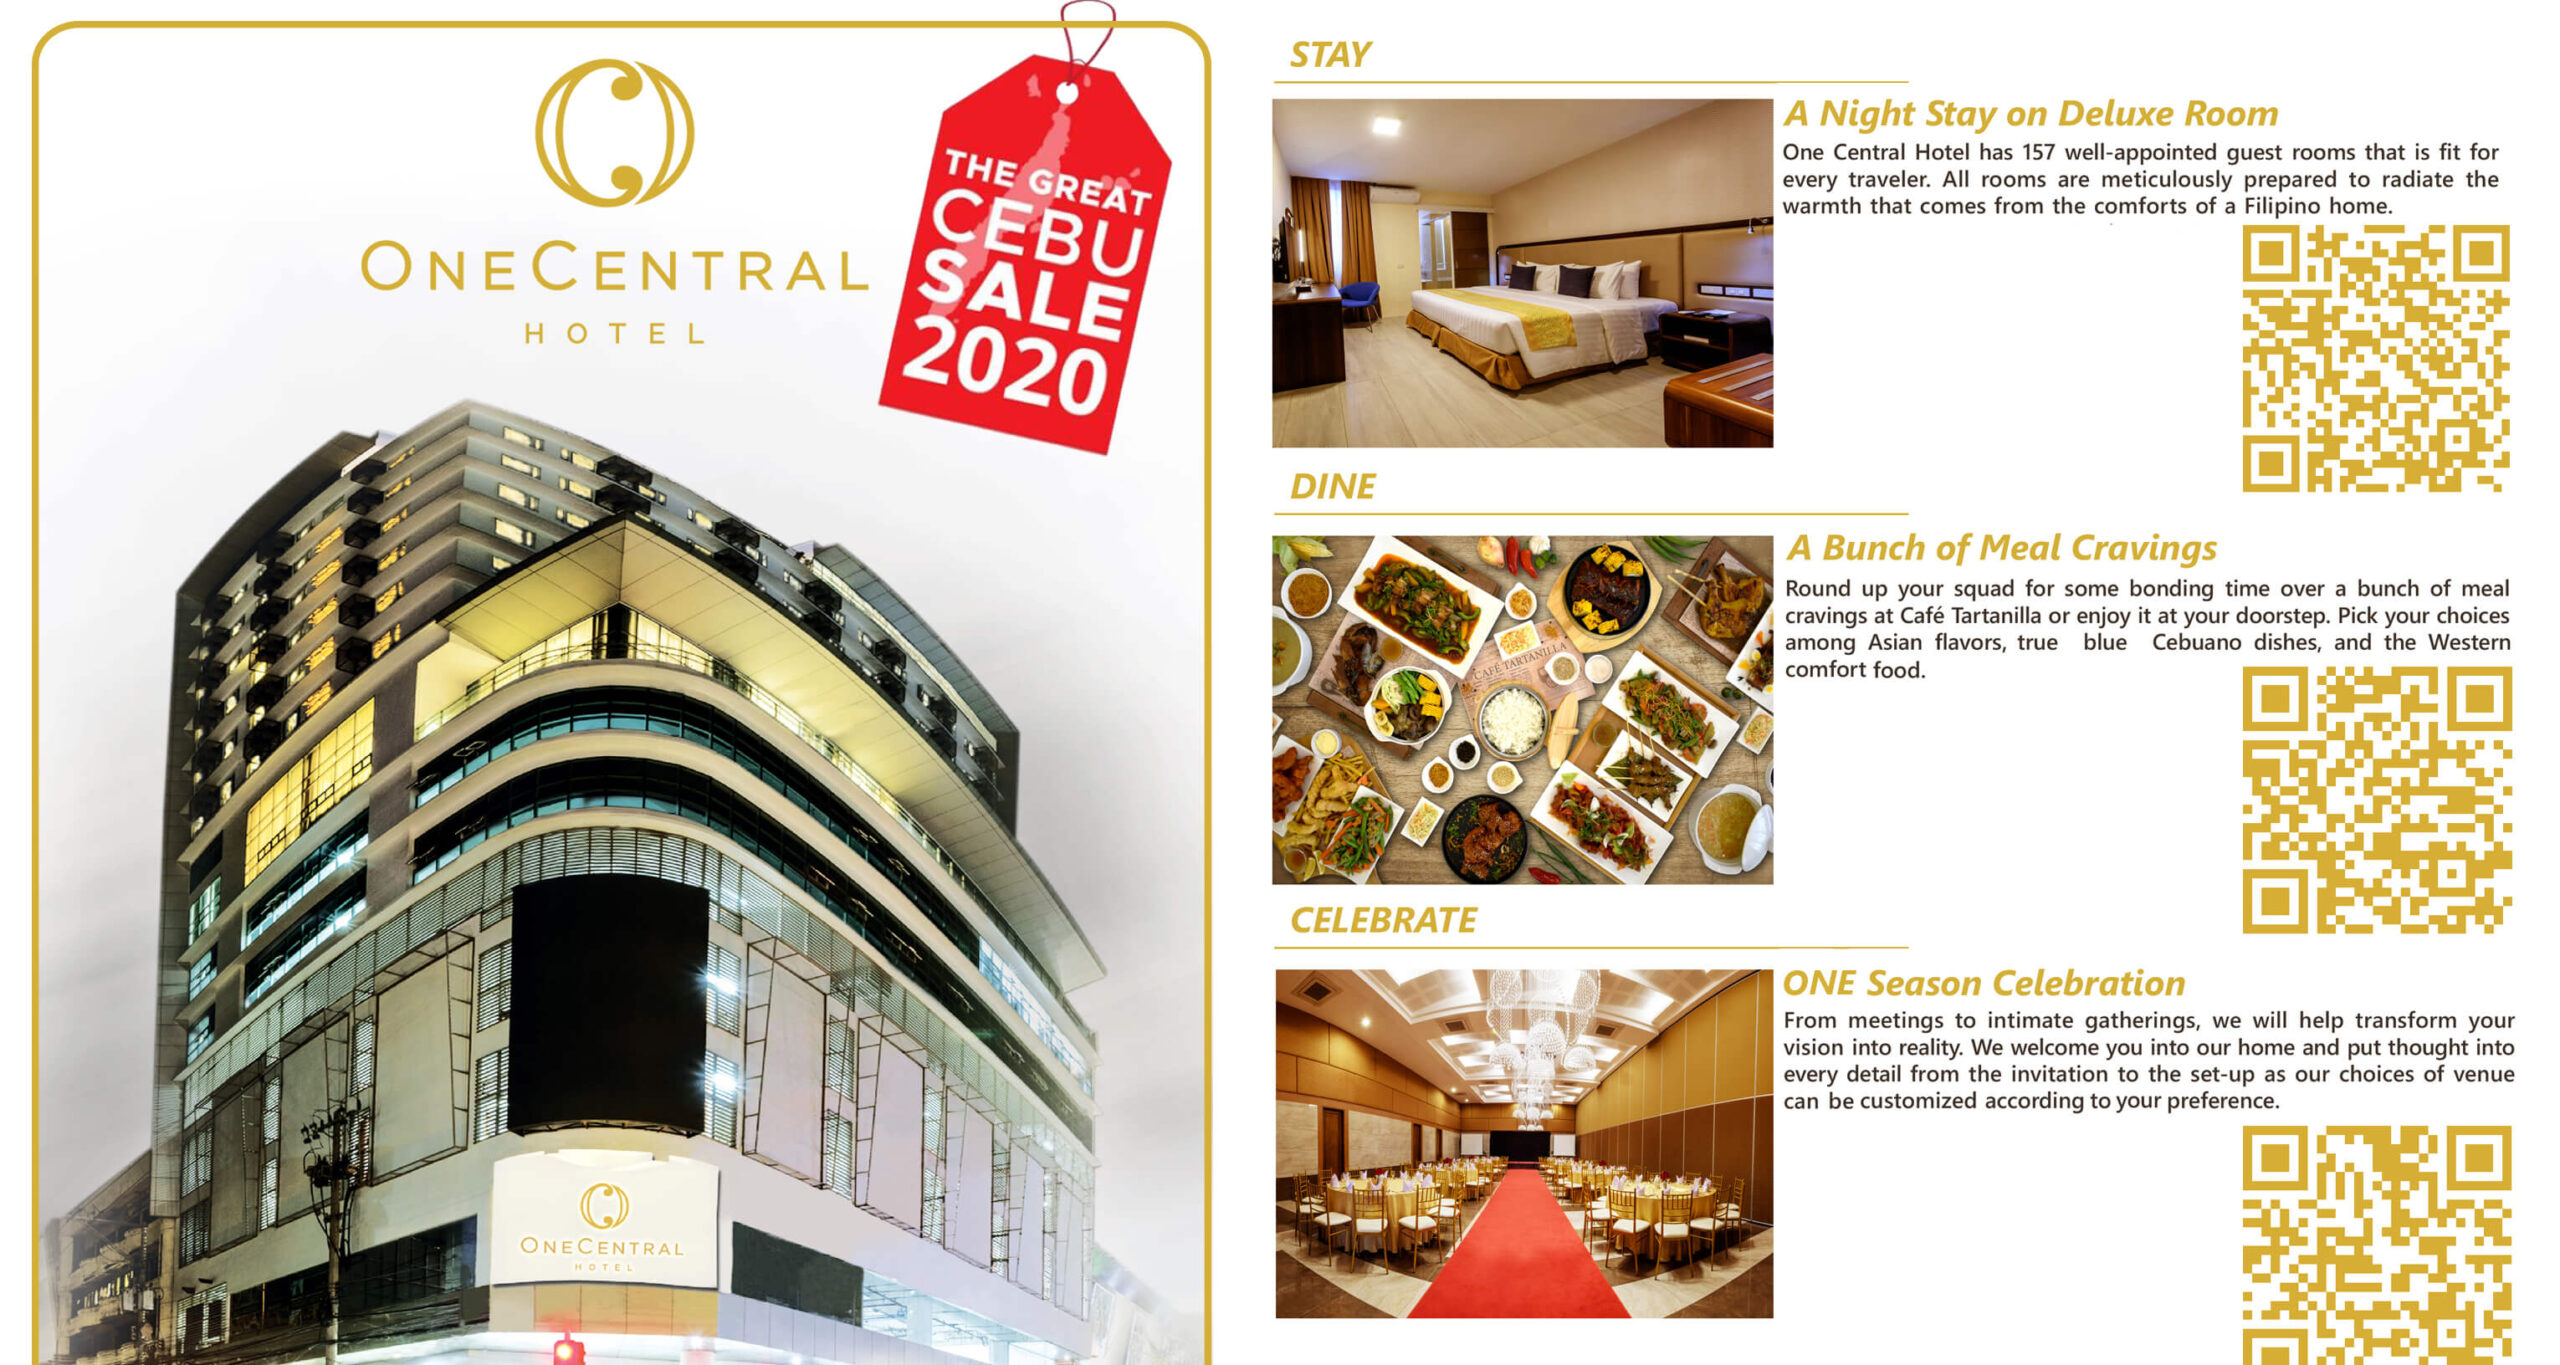 One Central Hotel offers 50% off on stay, dining promos